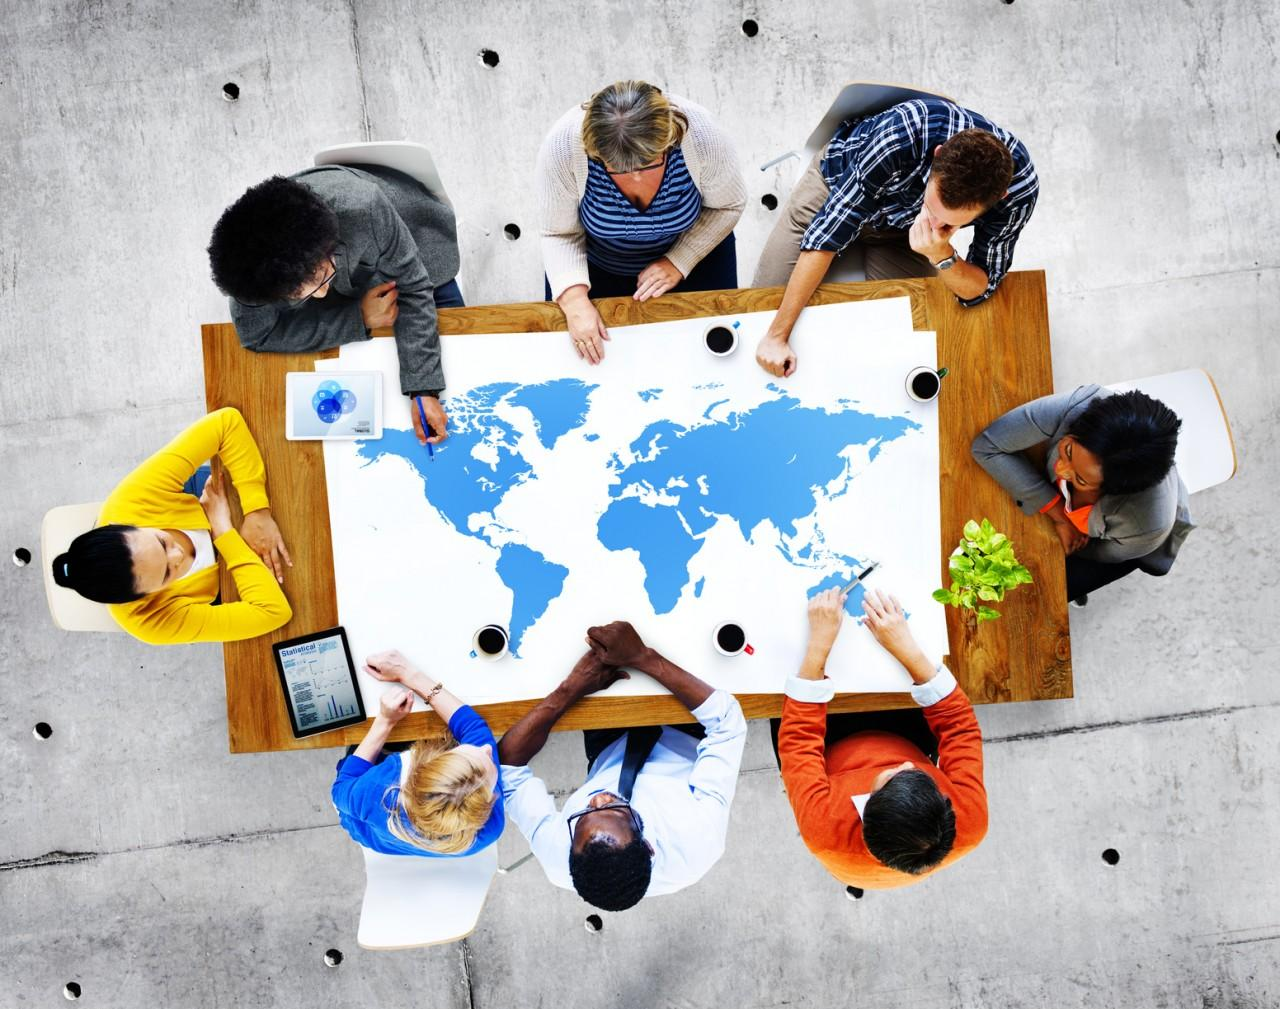 5 Essential Skills Every International Business Person Needs